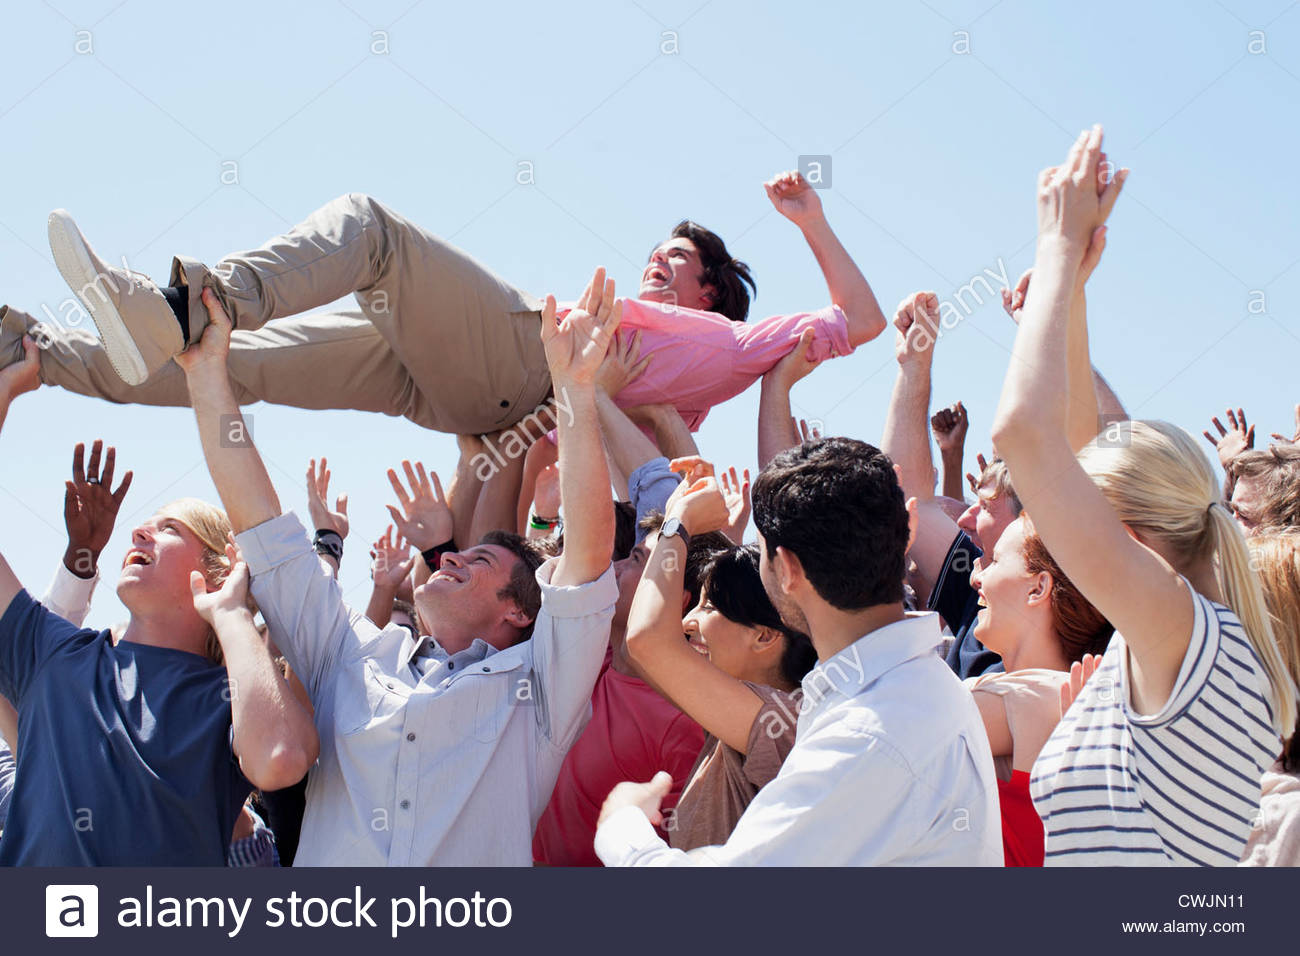 Man crowd surfing - Stock Image